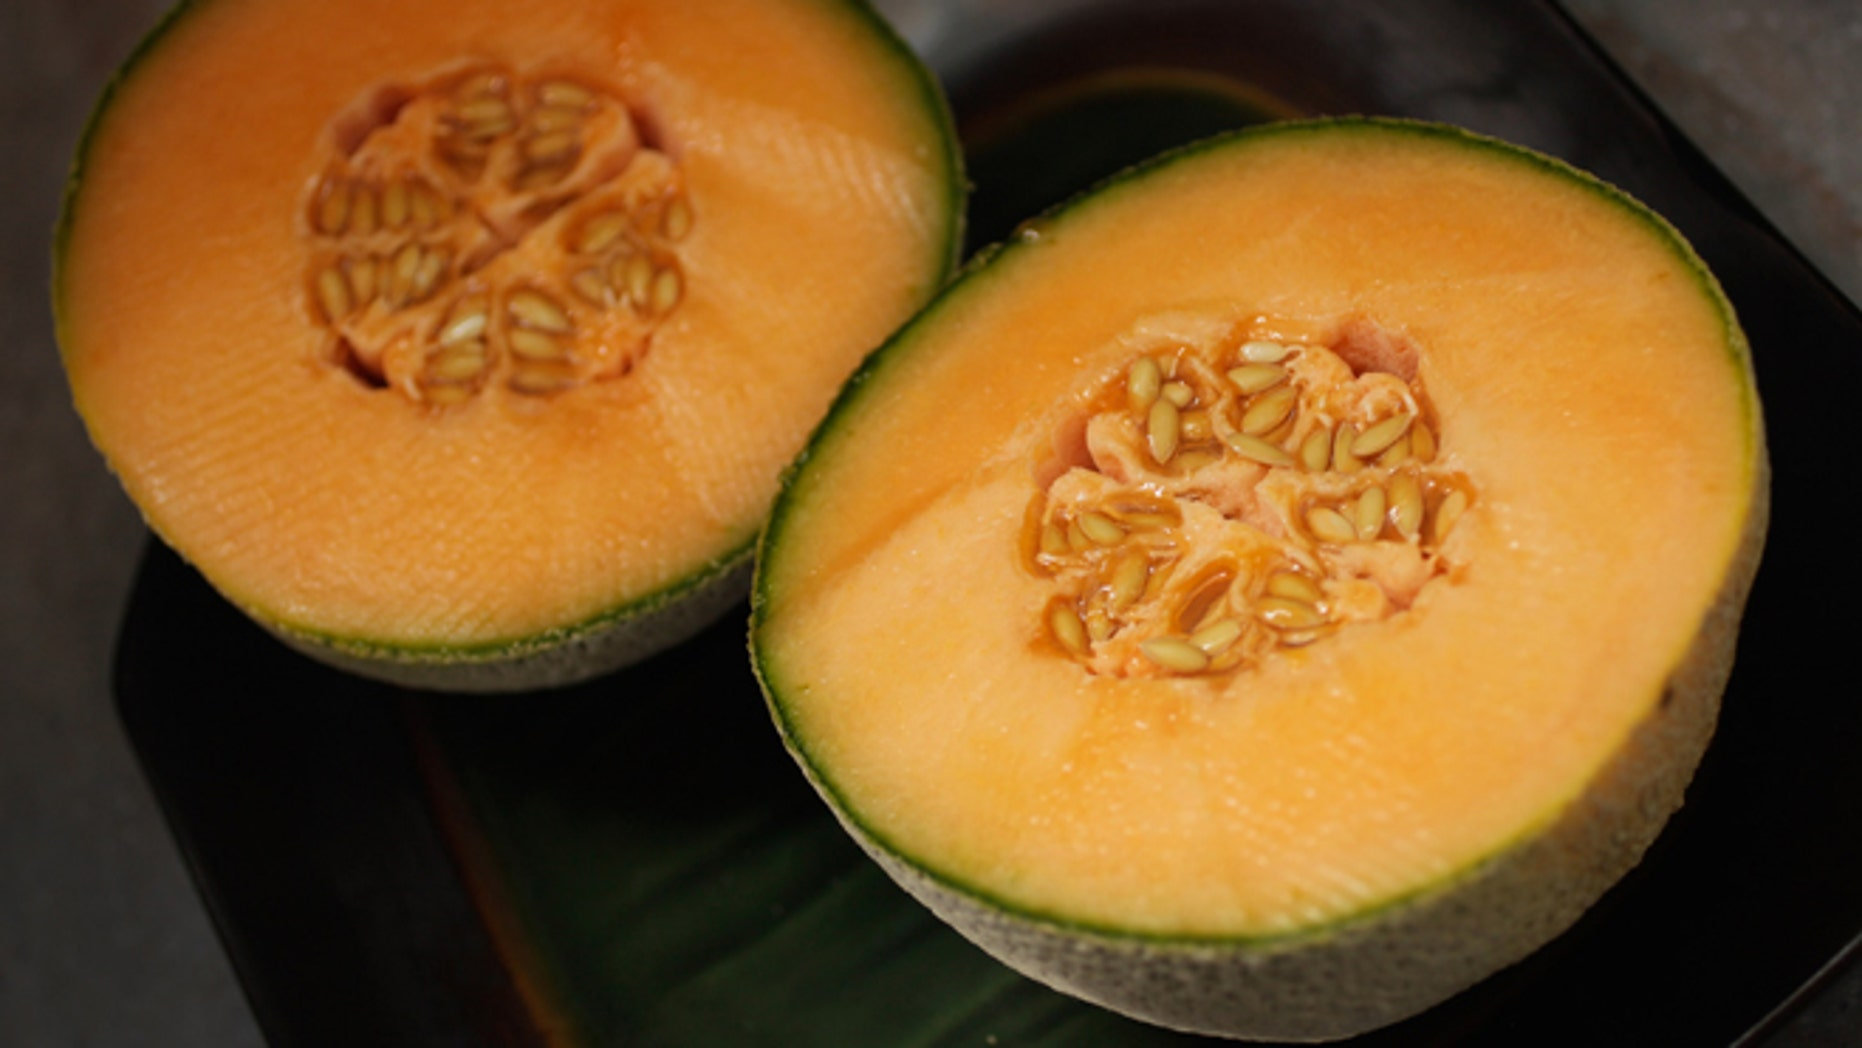 Cantaloupe Bad / I have never liked cantaloupe;